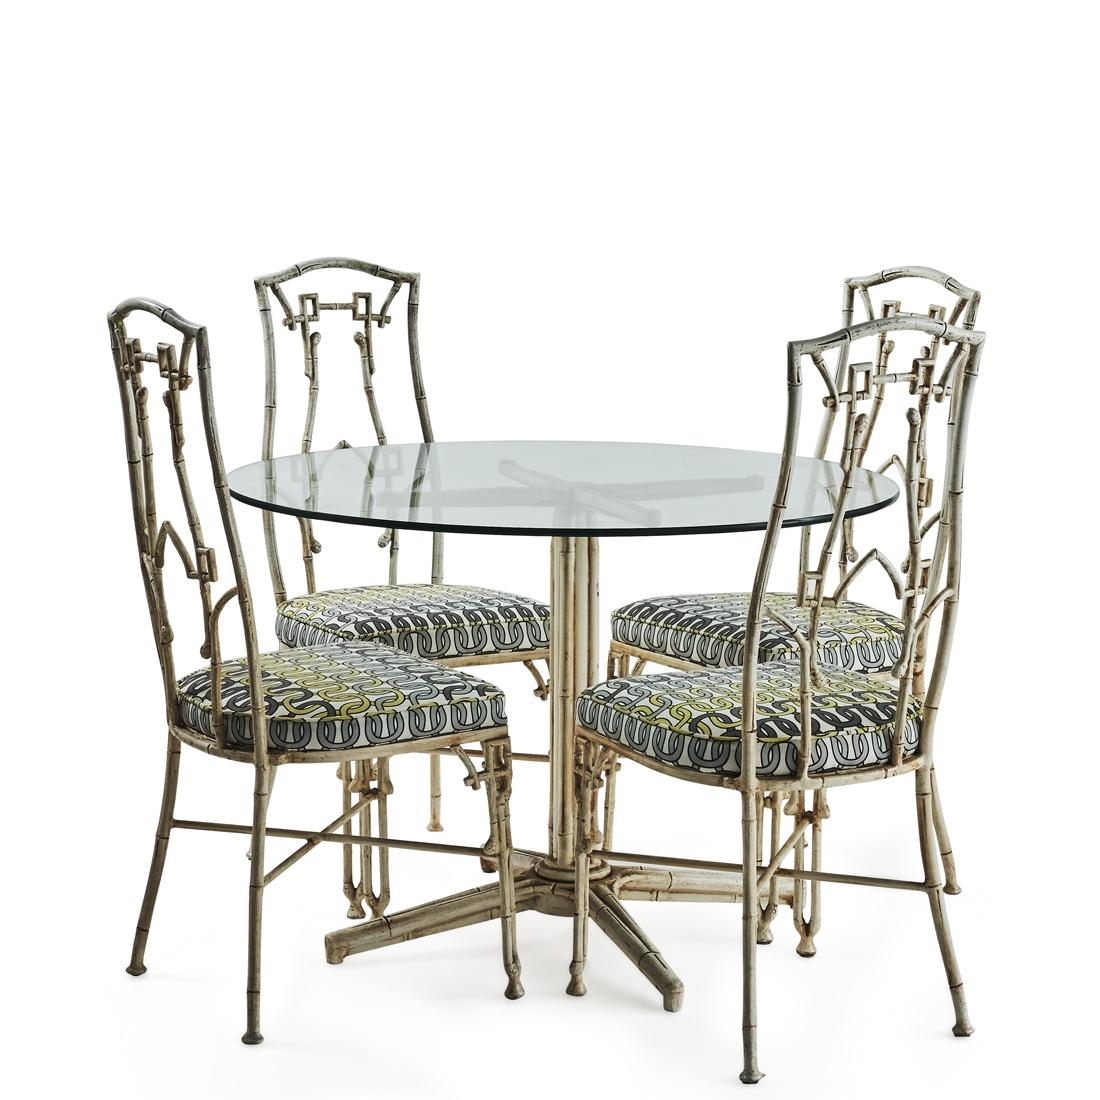 A Hollywood Regency Dining Table And Four Chairs Price Estimate 800 1500